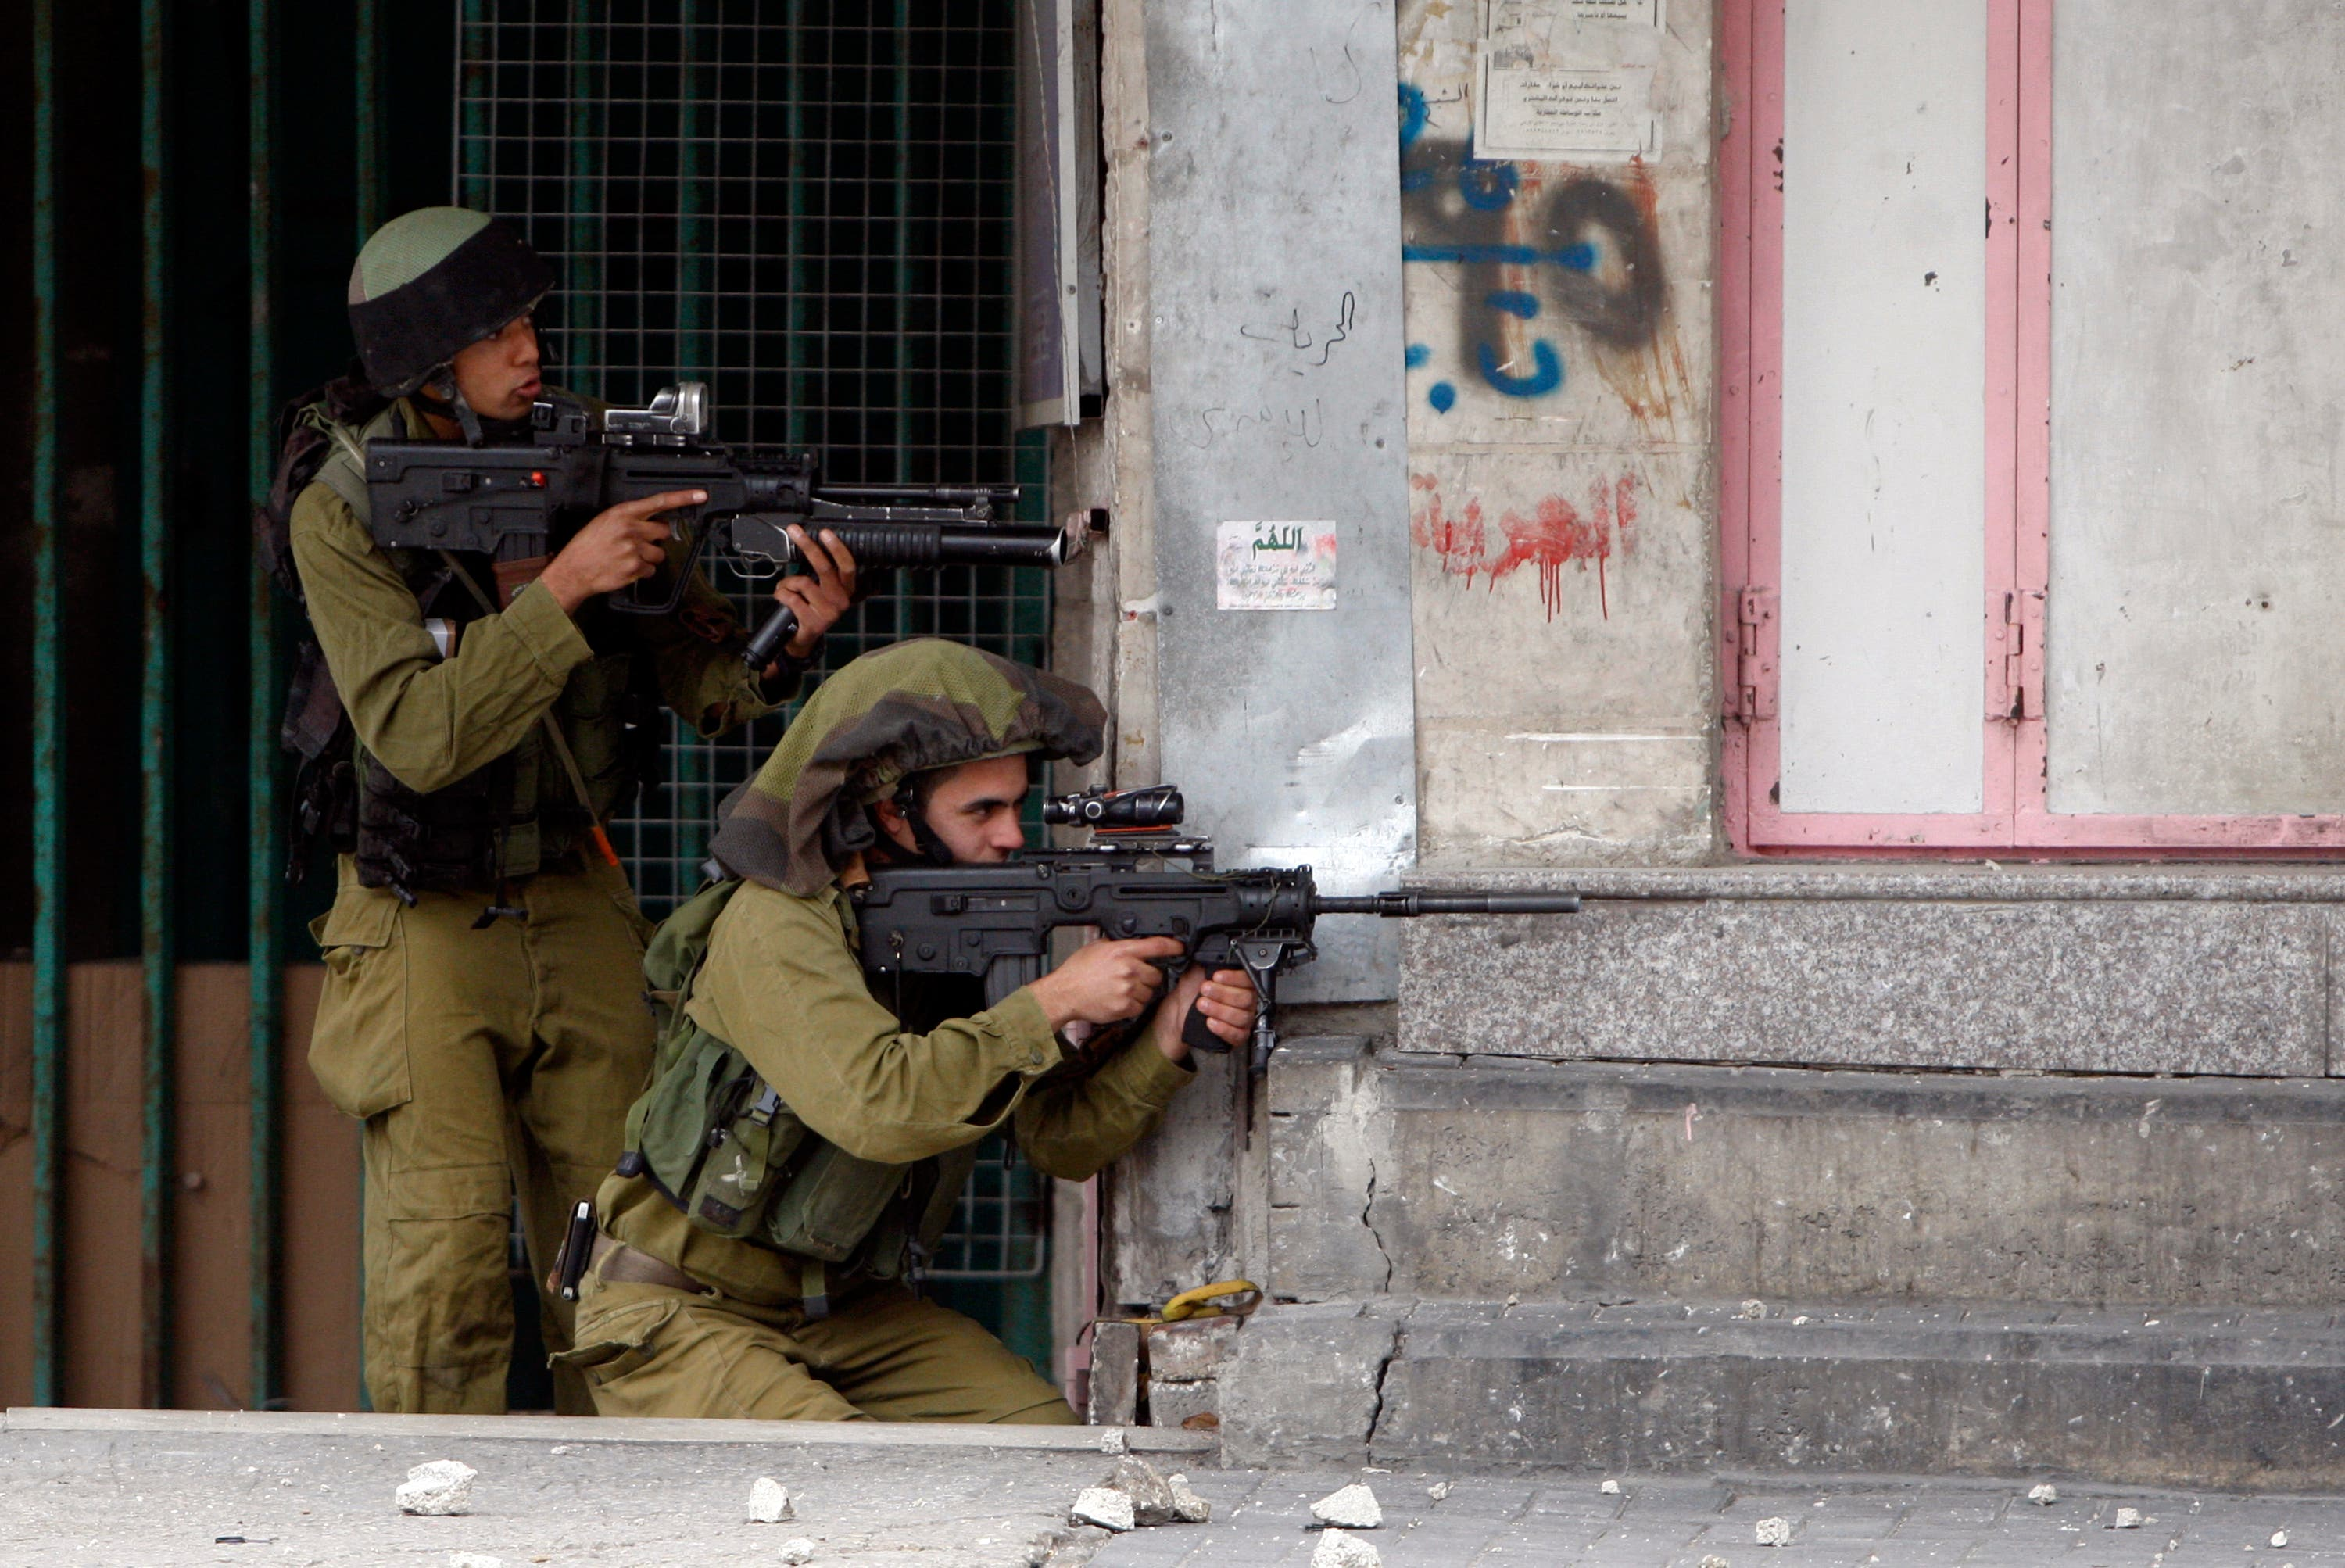 Israeli soldiers take position during clashes with stone-throwing Palestinians that followed a rally to support President Mahmoud Abbas in the West Bank city of Hebron March 17, 2014. reuters